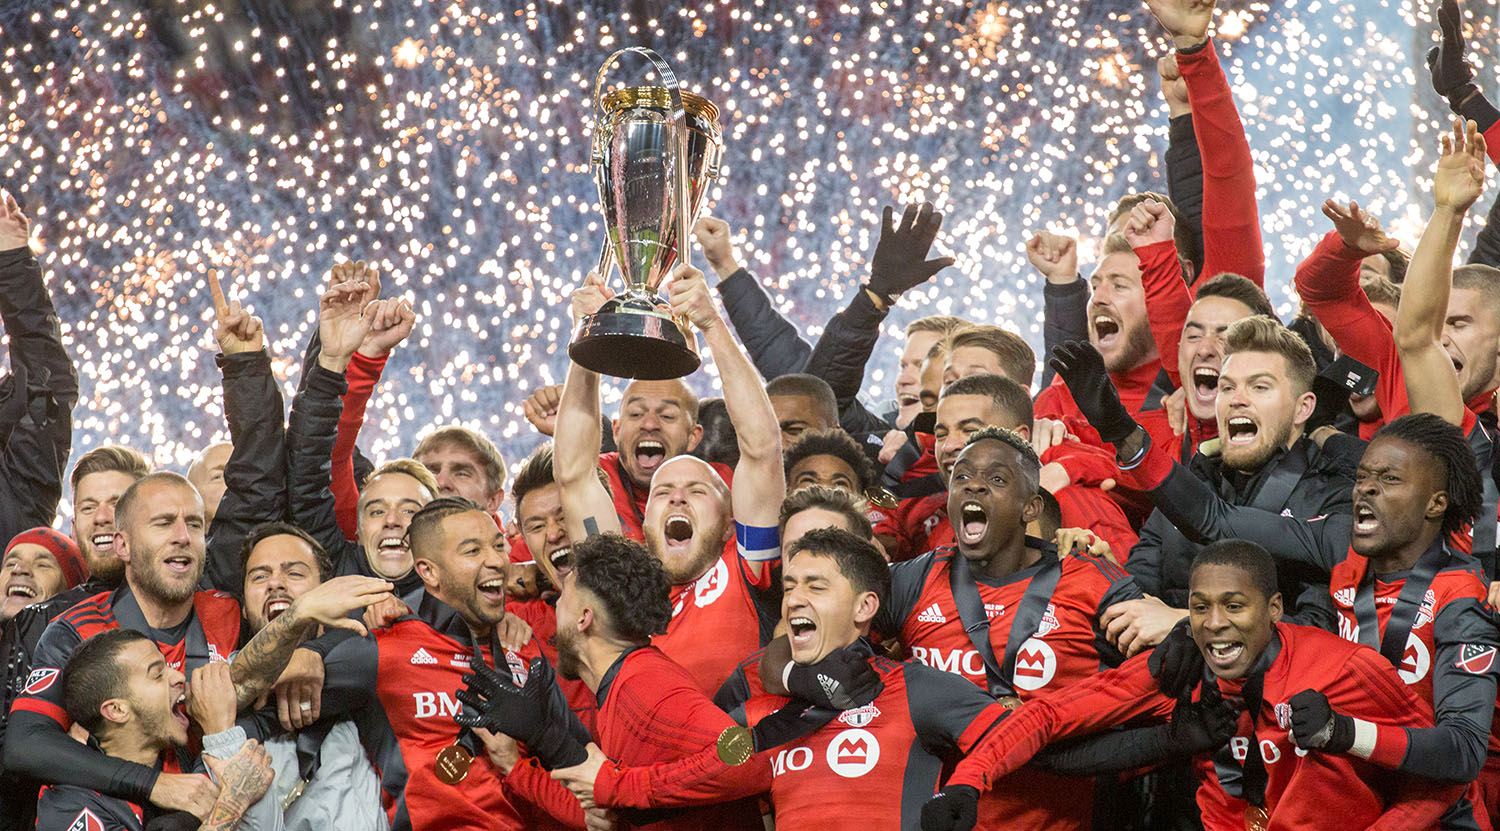 Sparks fly as the MLS Cup is finally lifted at BMO Field in 2017 after 11 seasons.Image by Dennis Marciniak of denMAR Media.